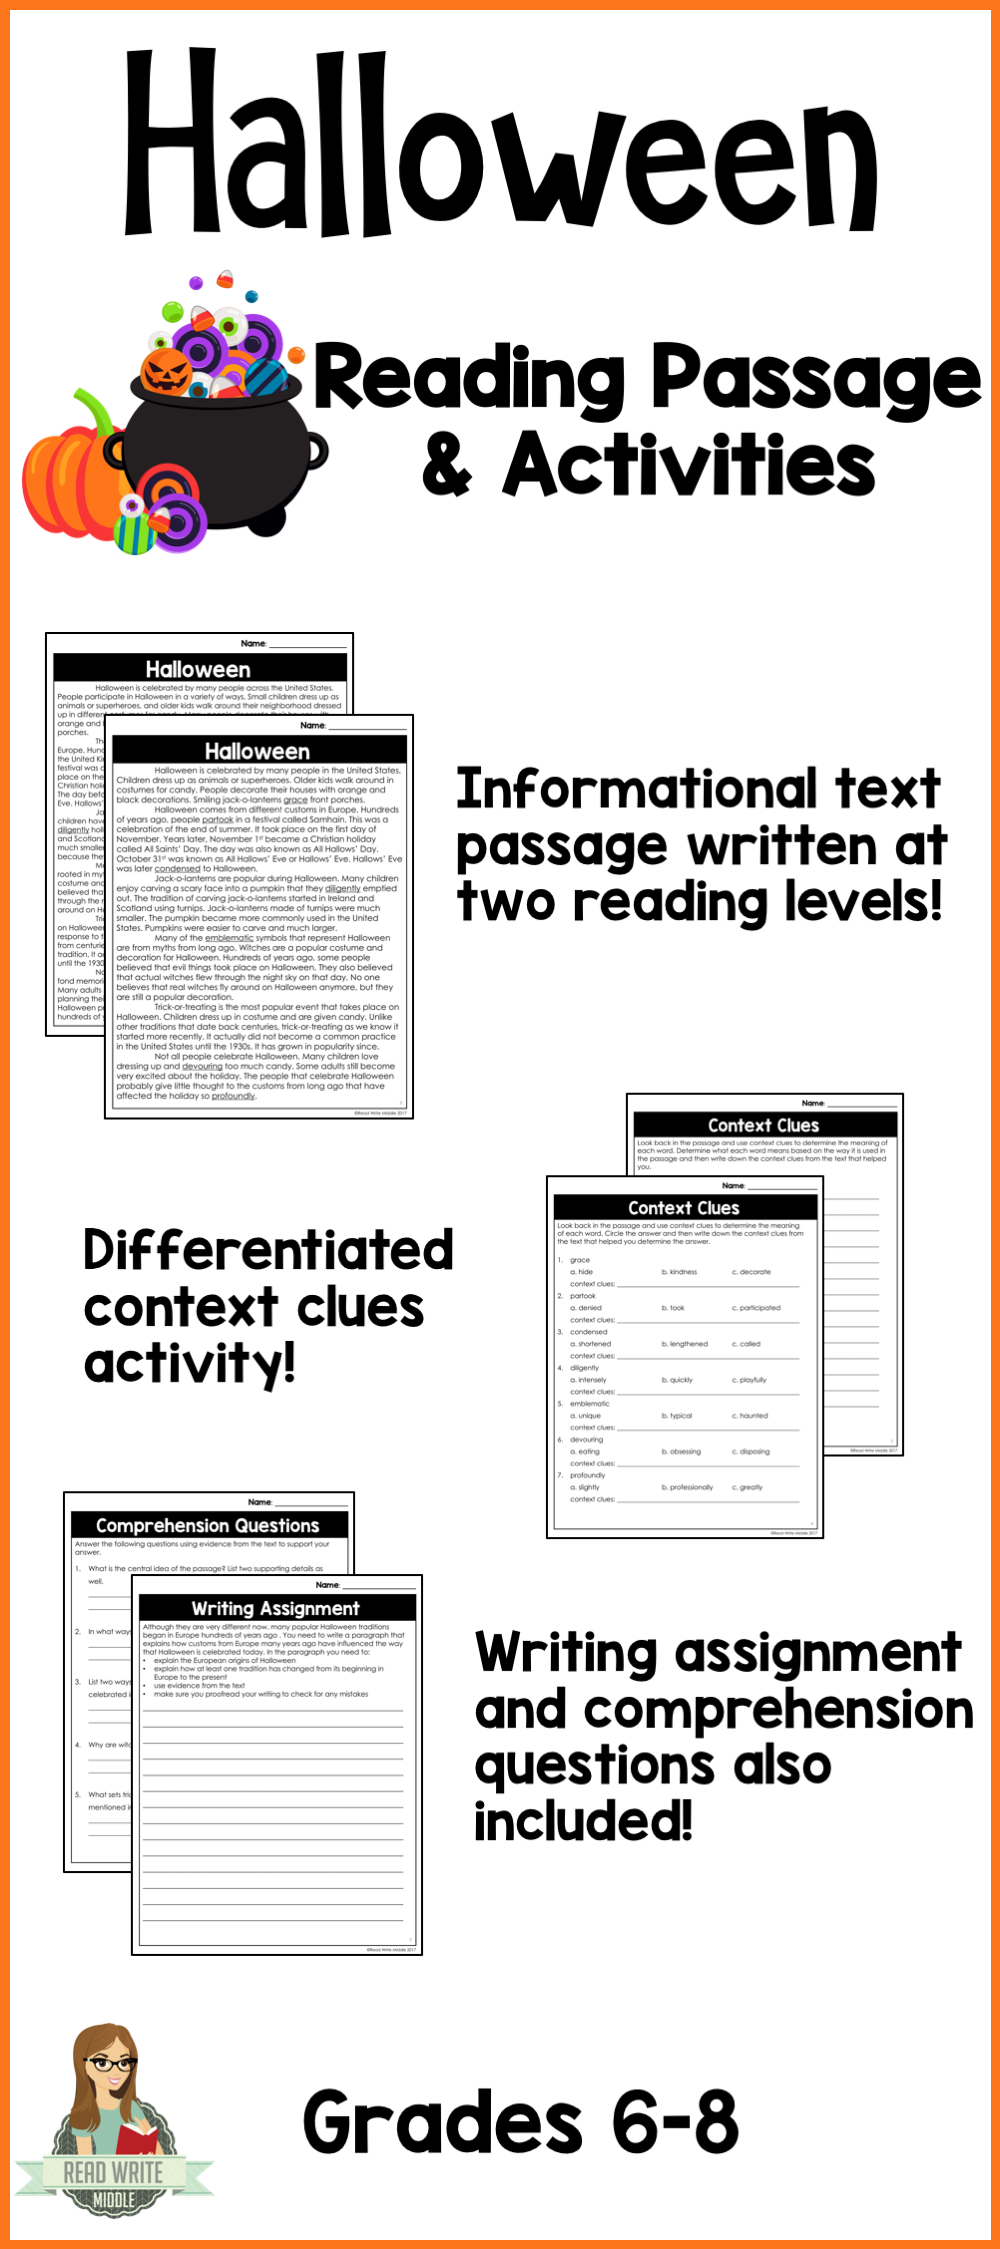 Great Differentiated Passage For Middle Schoolers Provides Context Clues And R Reading Passages Reading Comprehension Practice Differentiated Reading Passages [ 2249 x 1000 Pixel ]